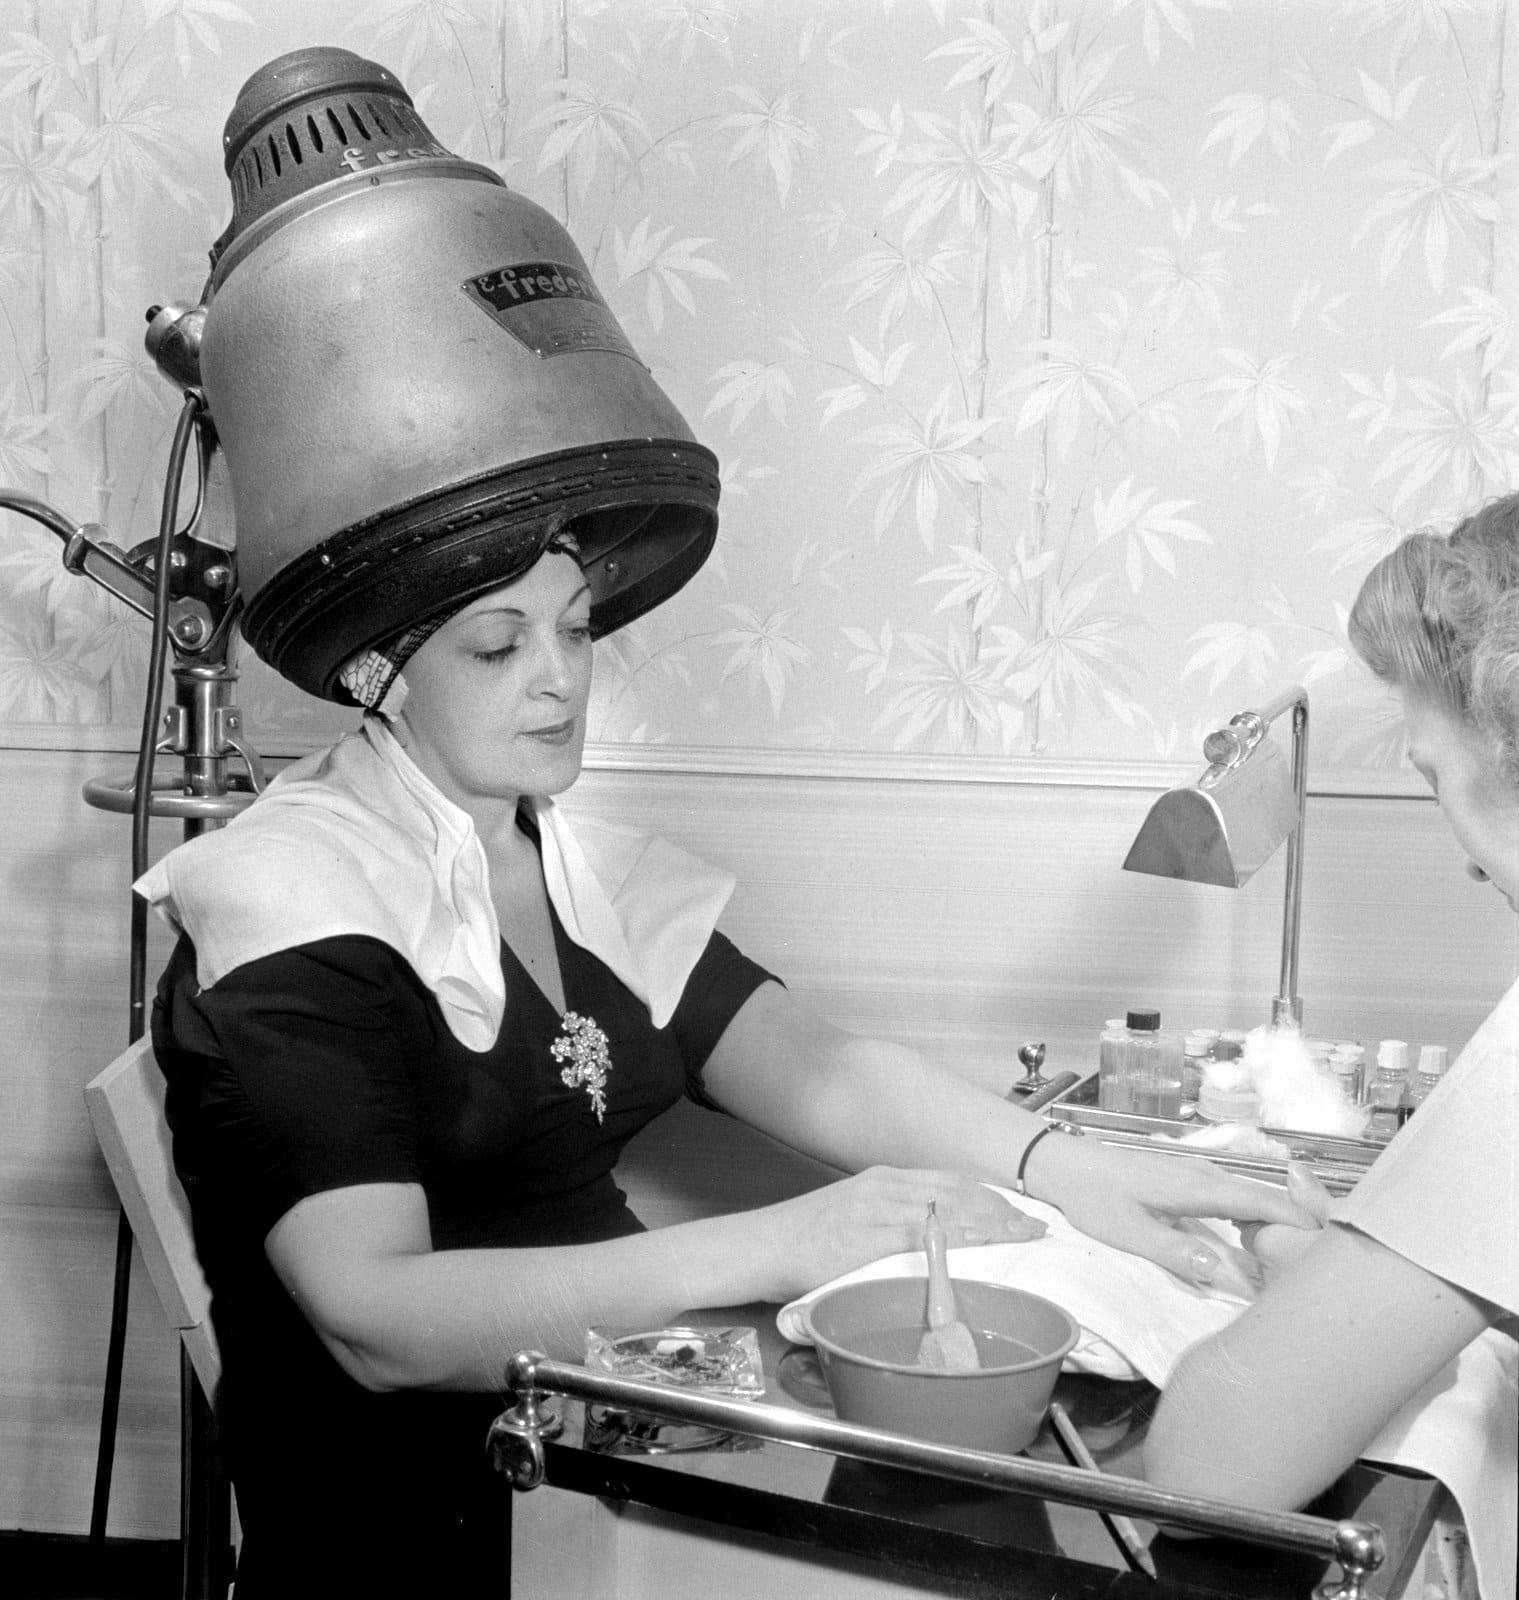 A woman getting a manicure while she sits under a hairdryer